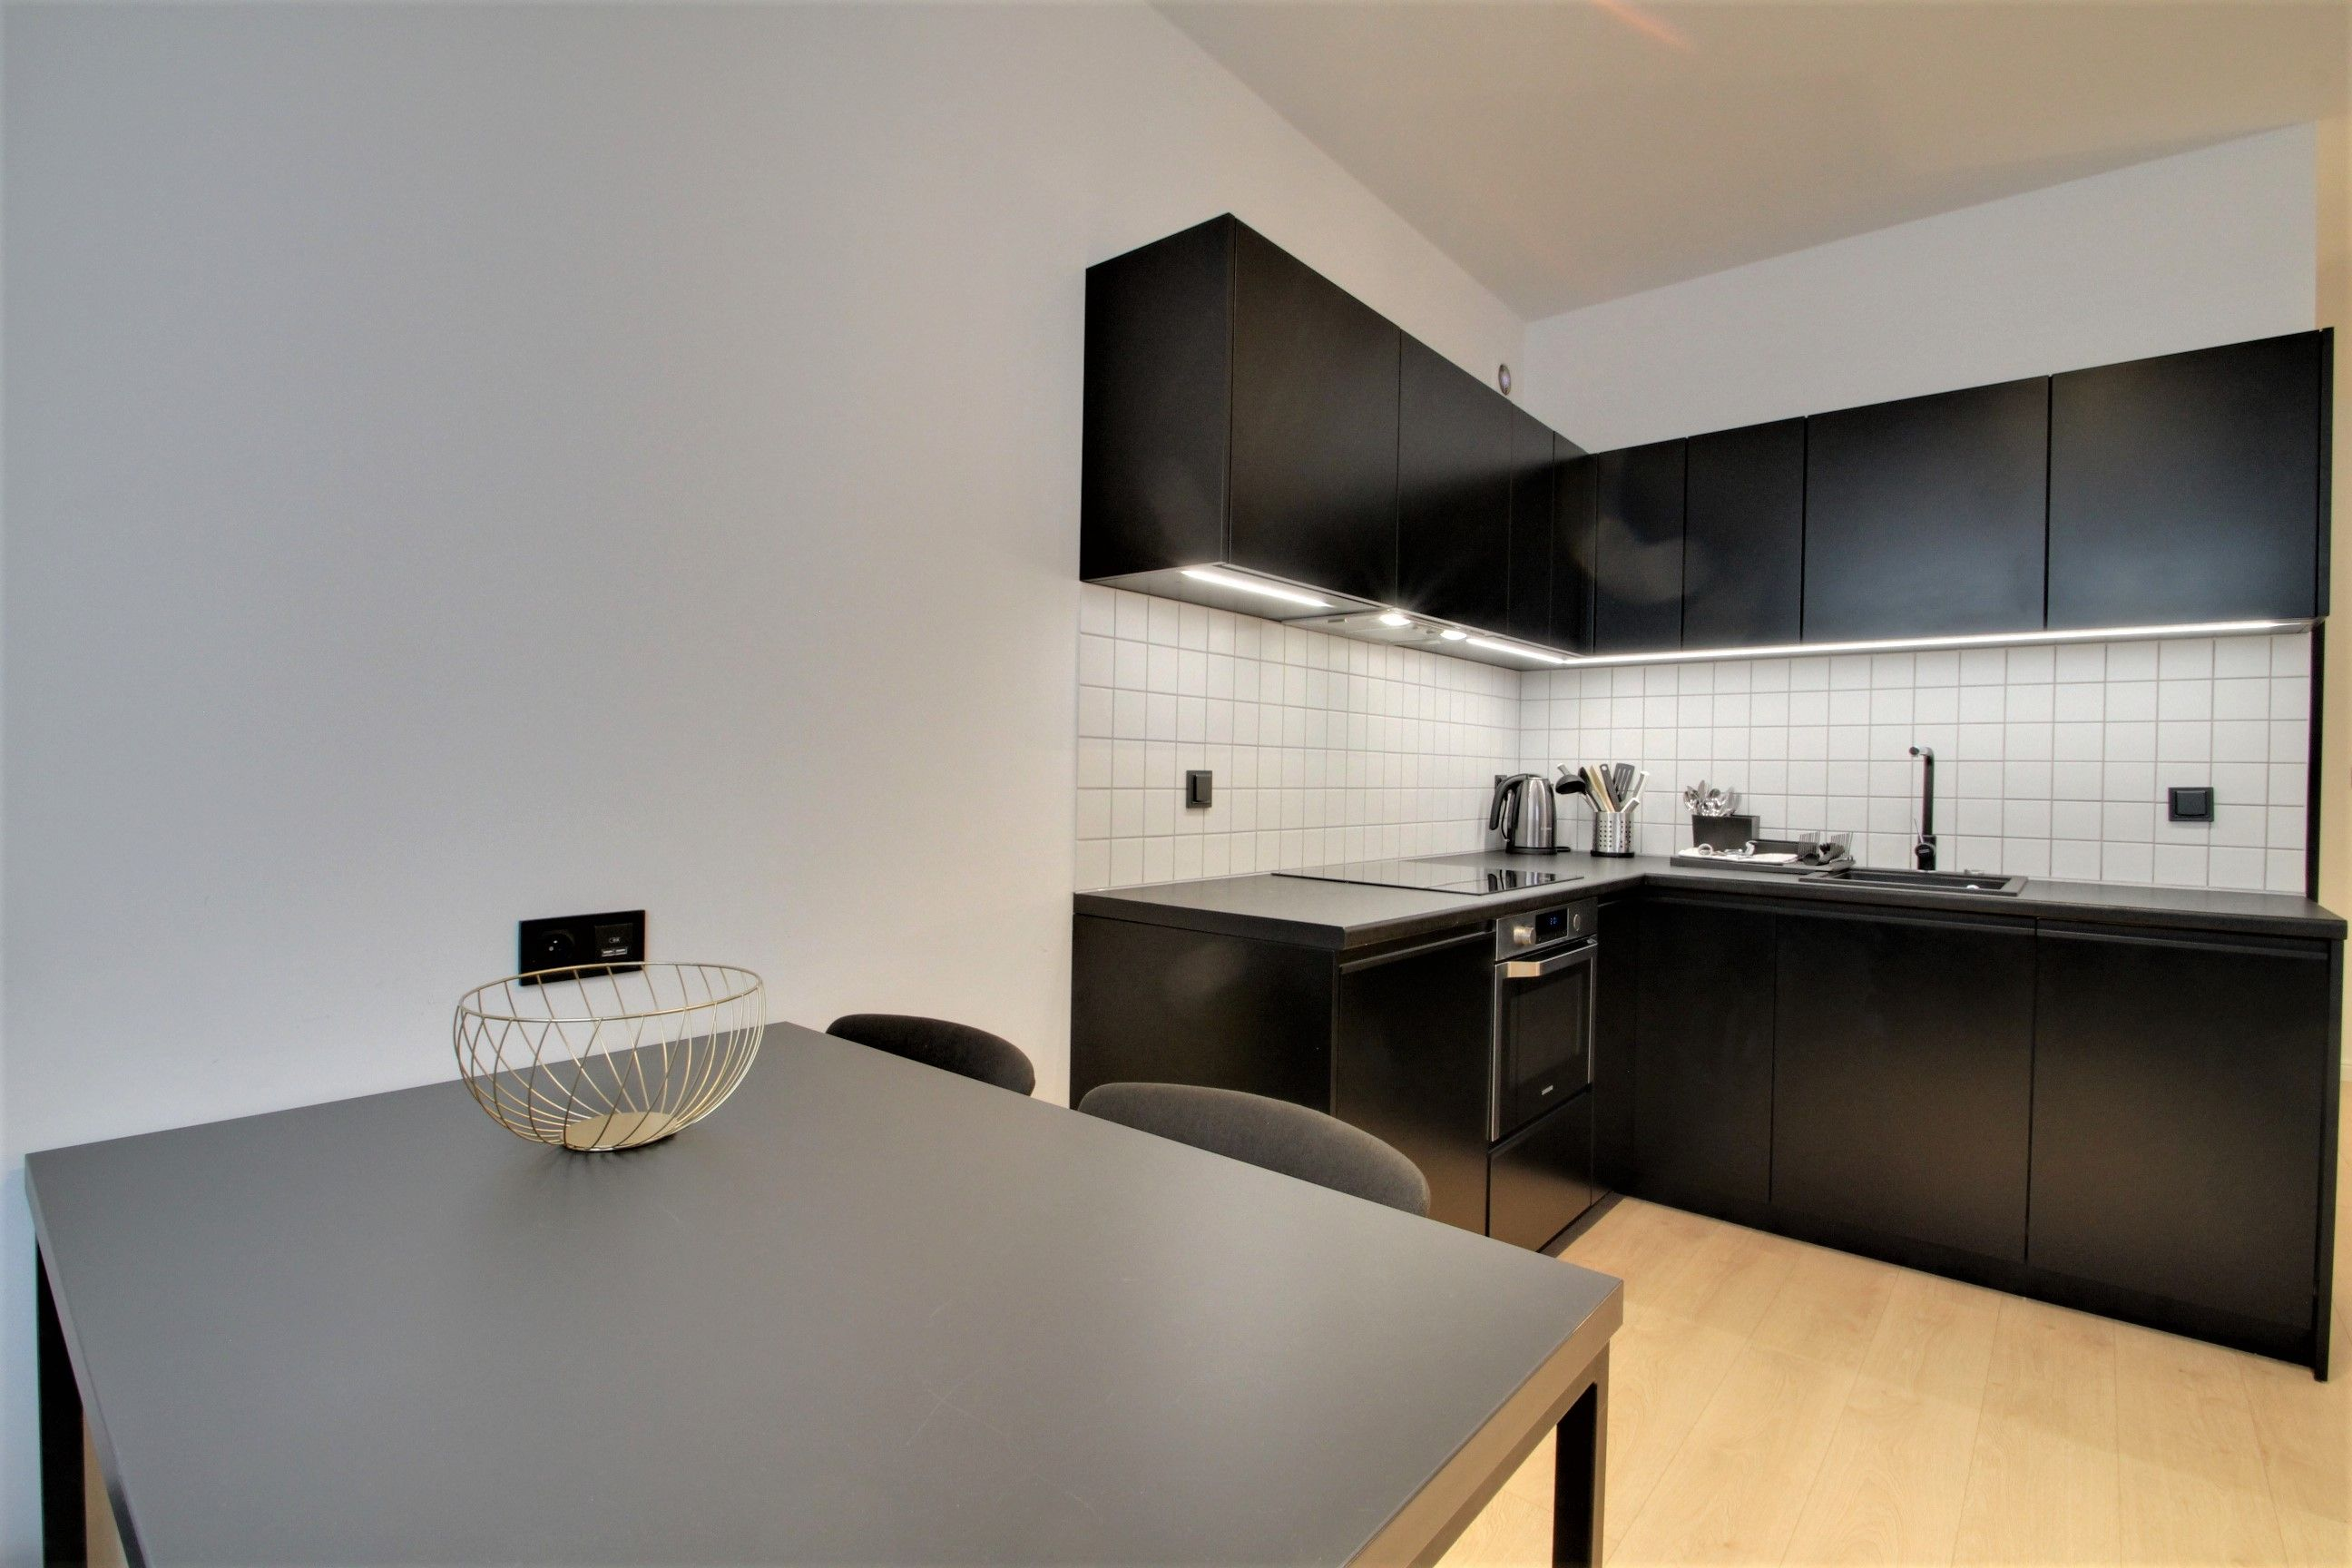 Studio - Large apartment to rent in Warsaw UPR-A-030-2